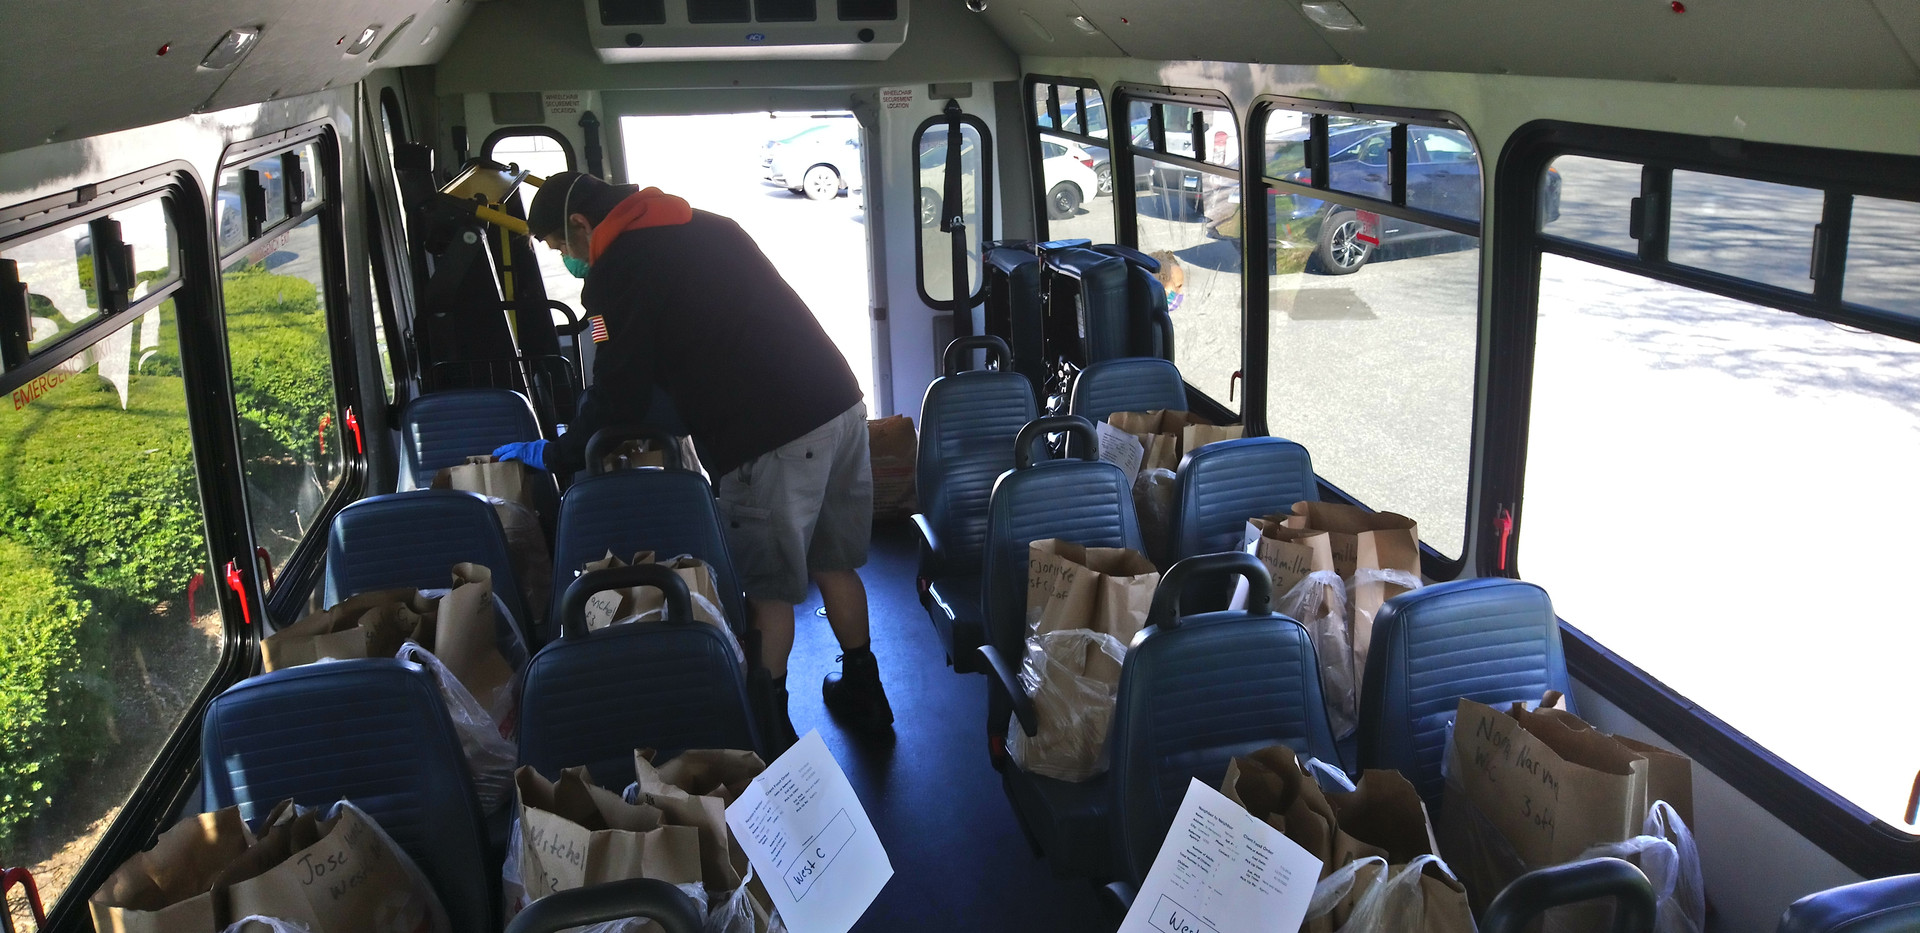 TAG van full of groceries going to seniors and disabled residents